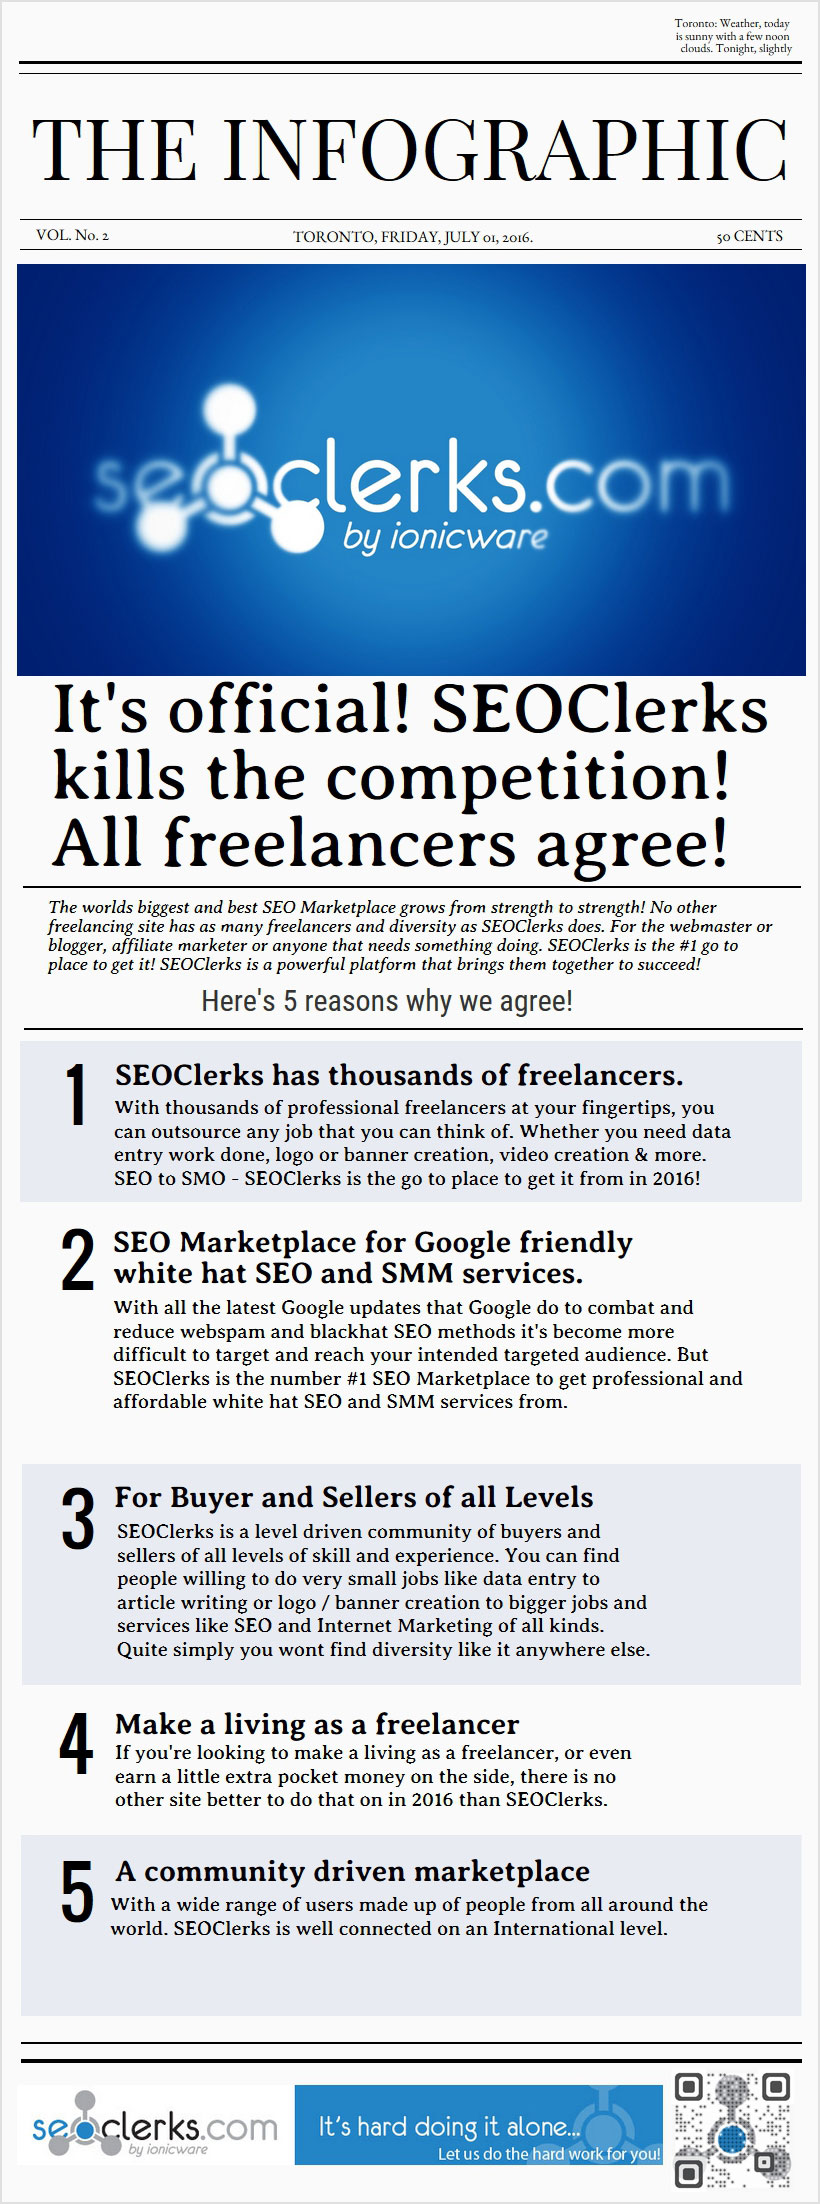 top 5 infographic creation sites used and reviewed seoclerks top 5 infographic creation sites used and reviewed